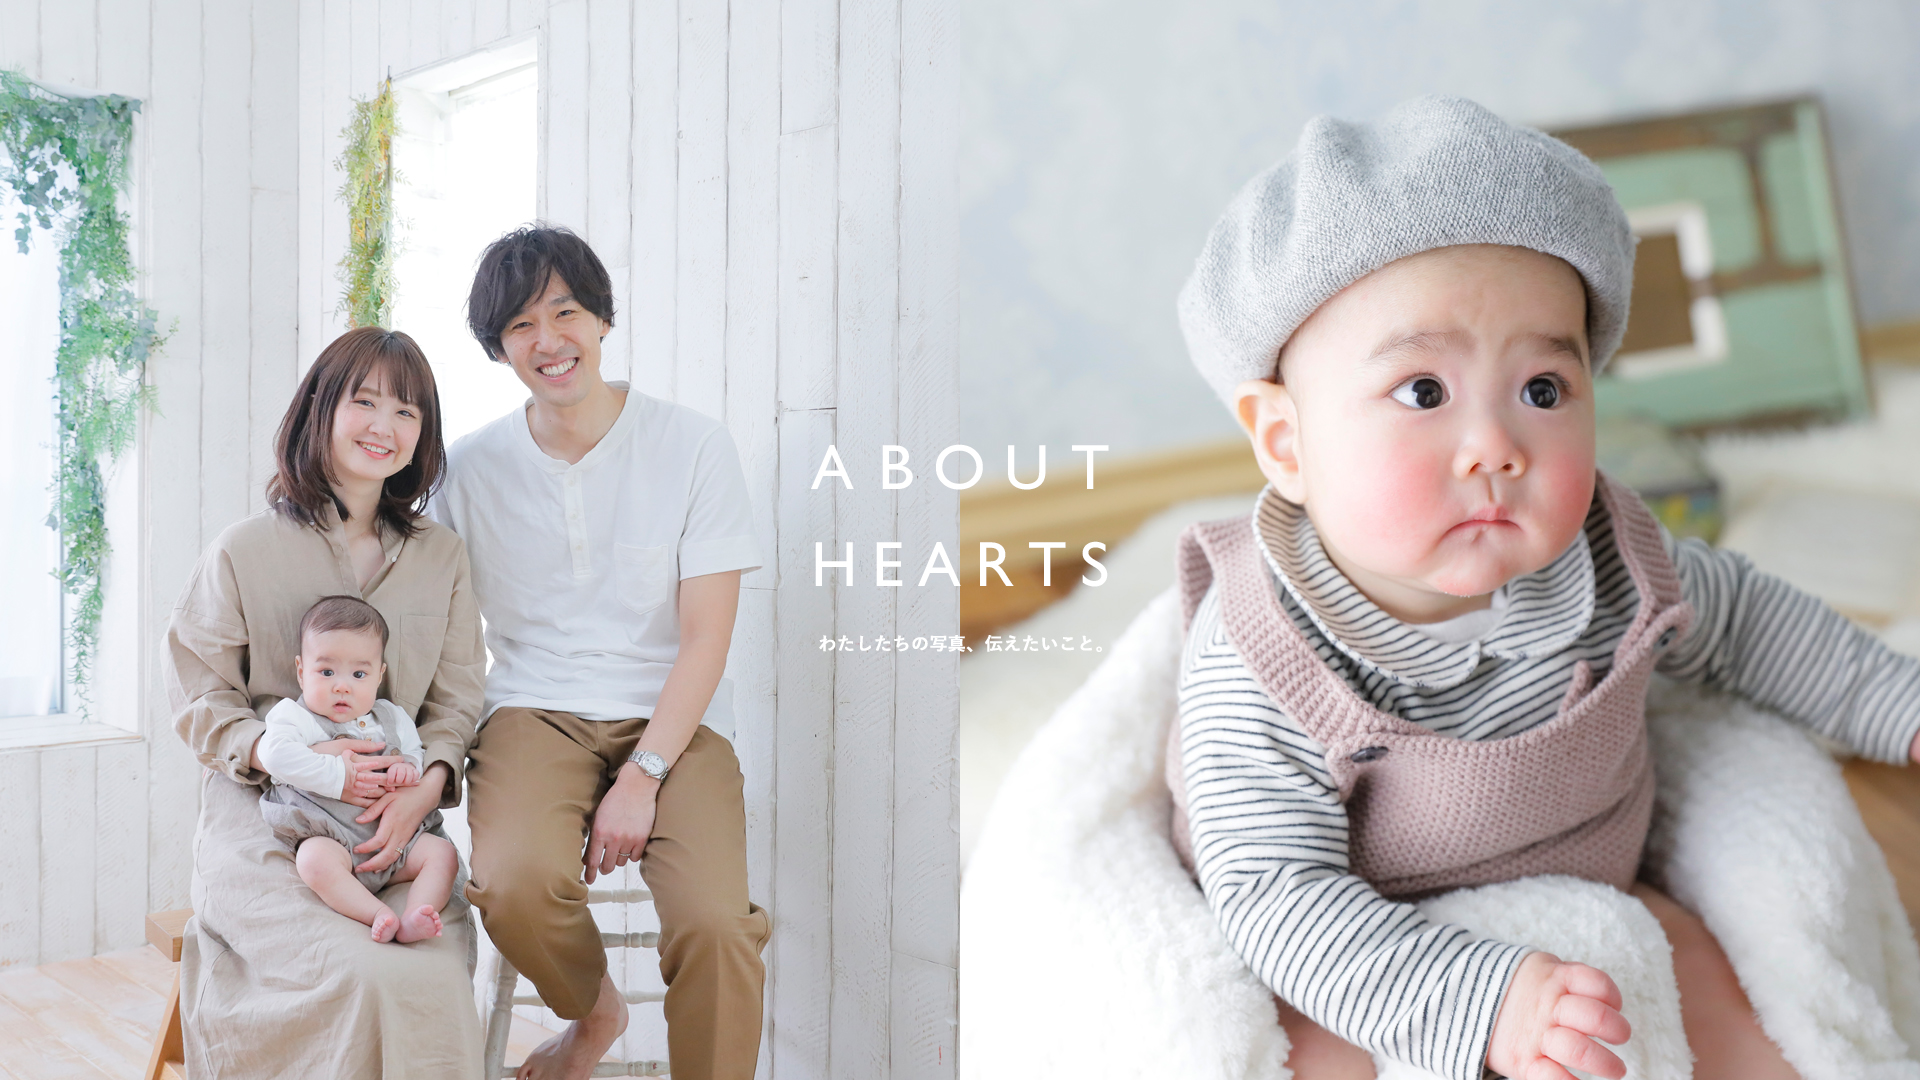 ABOUT HEARTS